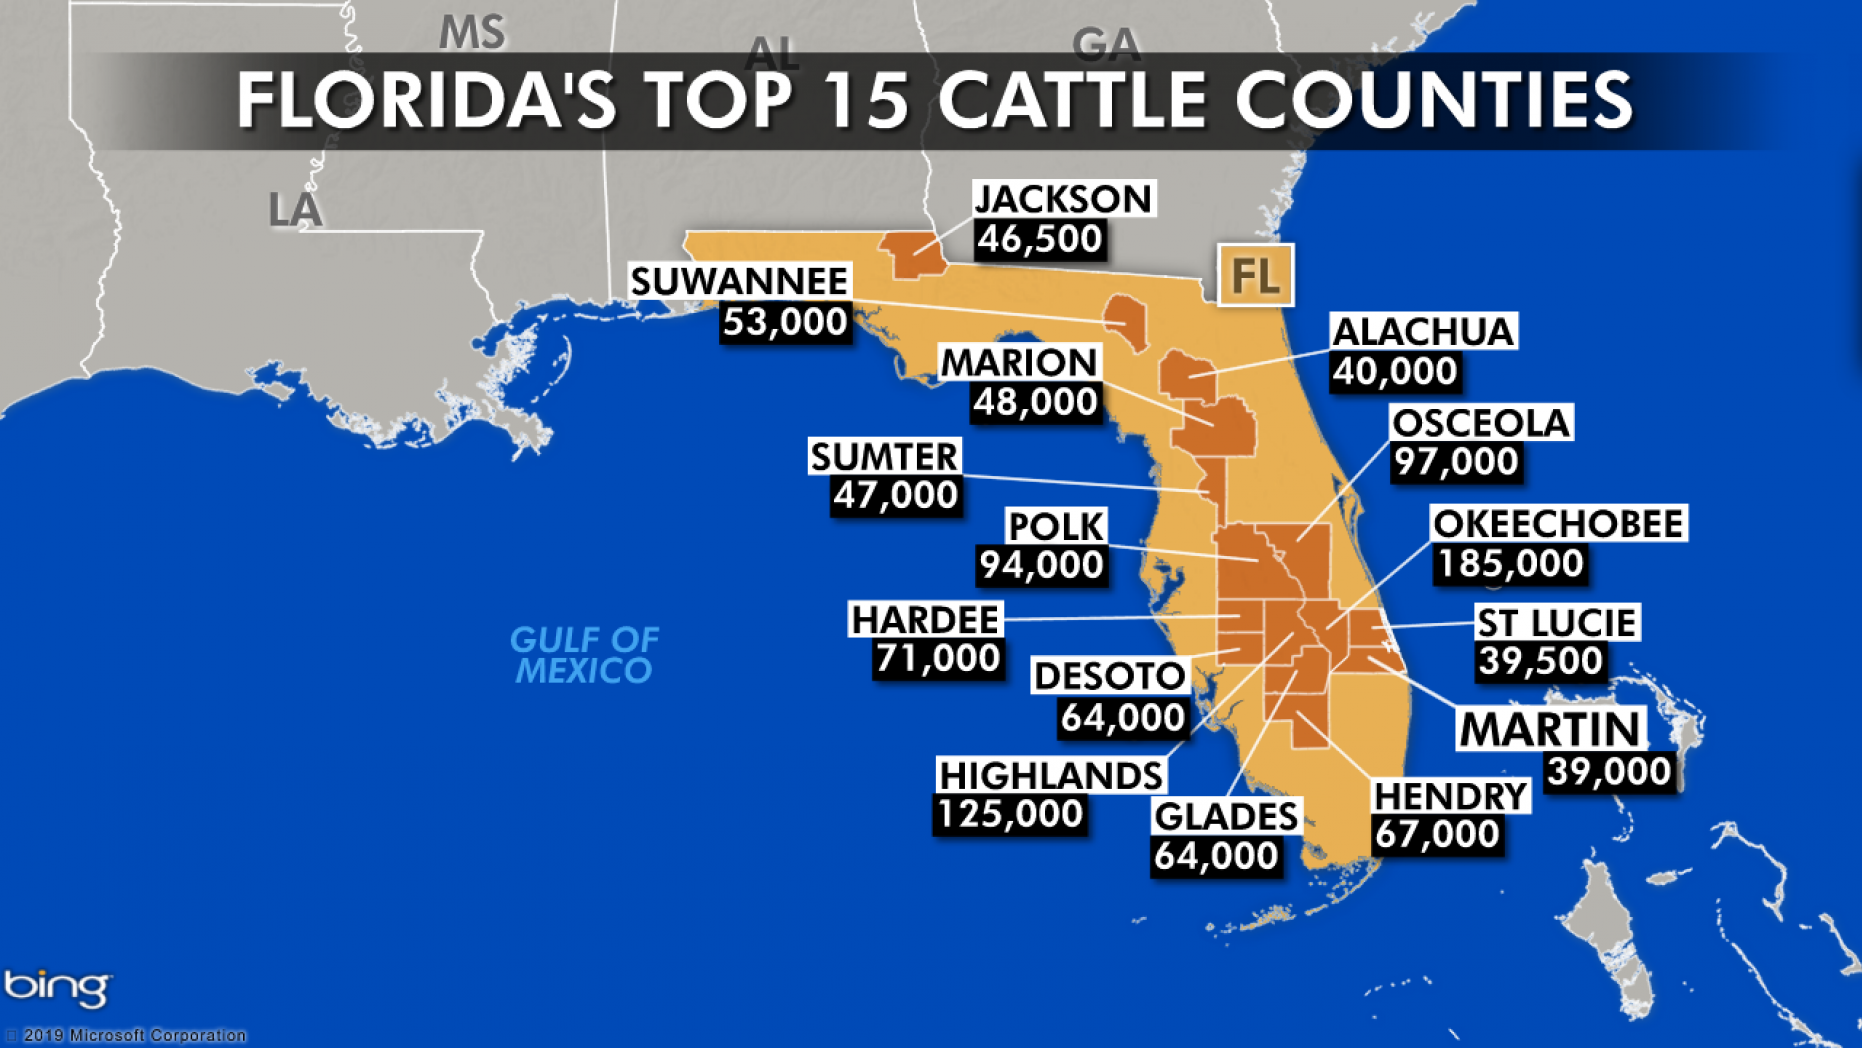 ridas top 15 cattle counties